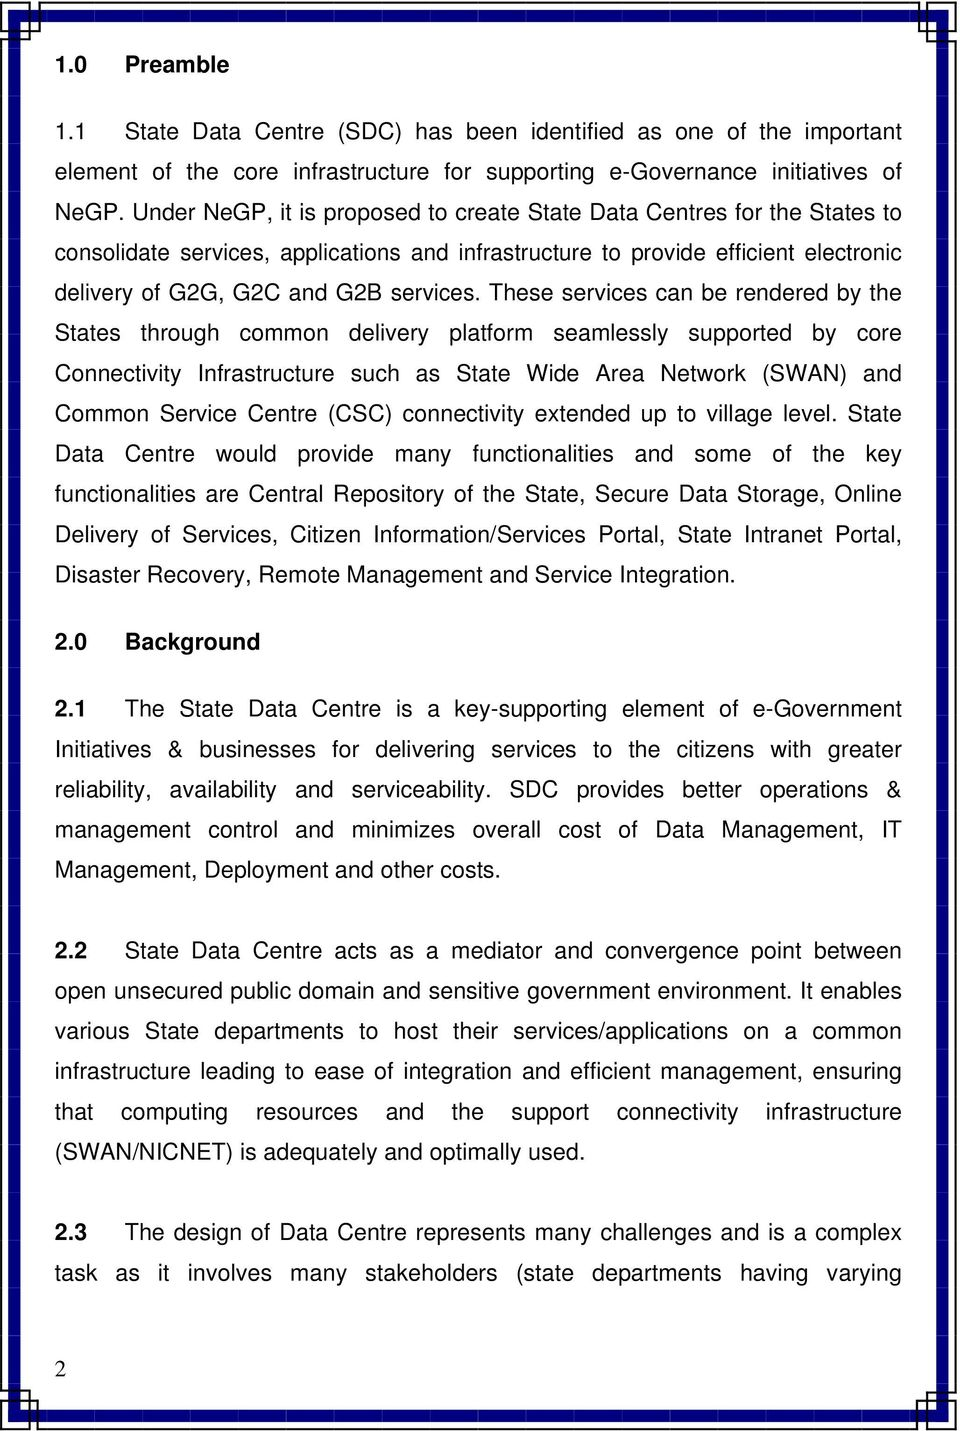 These services can be rendered by the States through common delivery platform seamlessly supported by core Connectivity Infrastructure such as State Wide Area Network (SWAN) and Common Service Centre